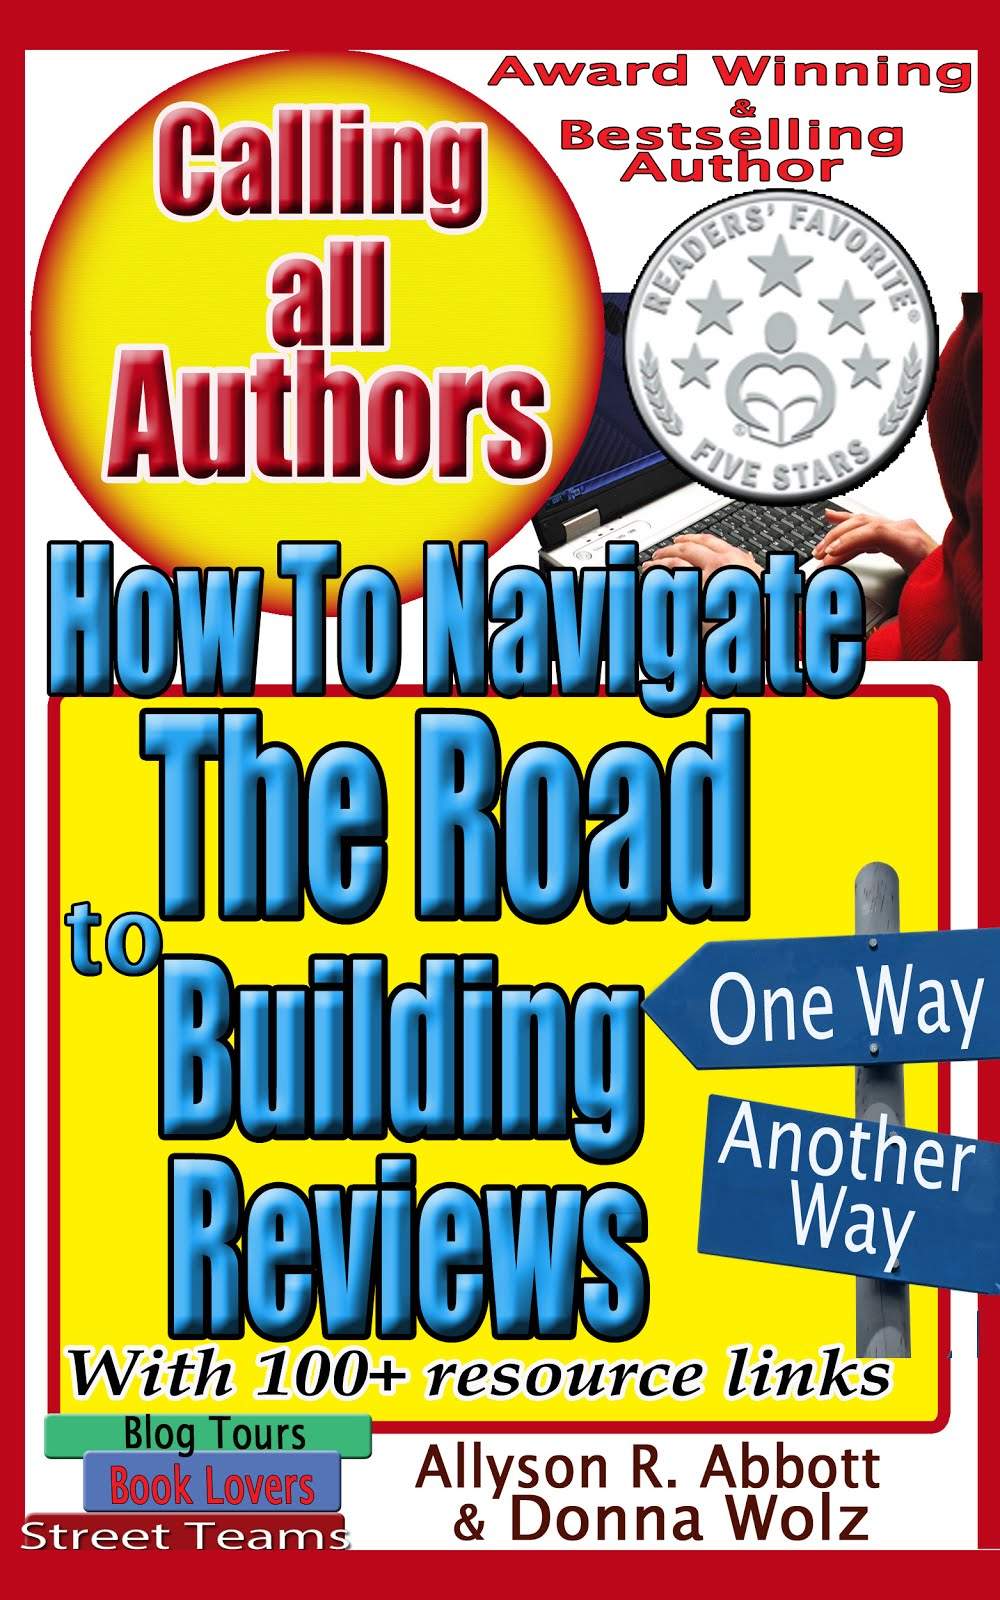 How To Get Book Reviews